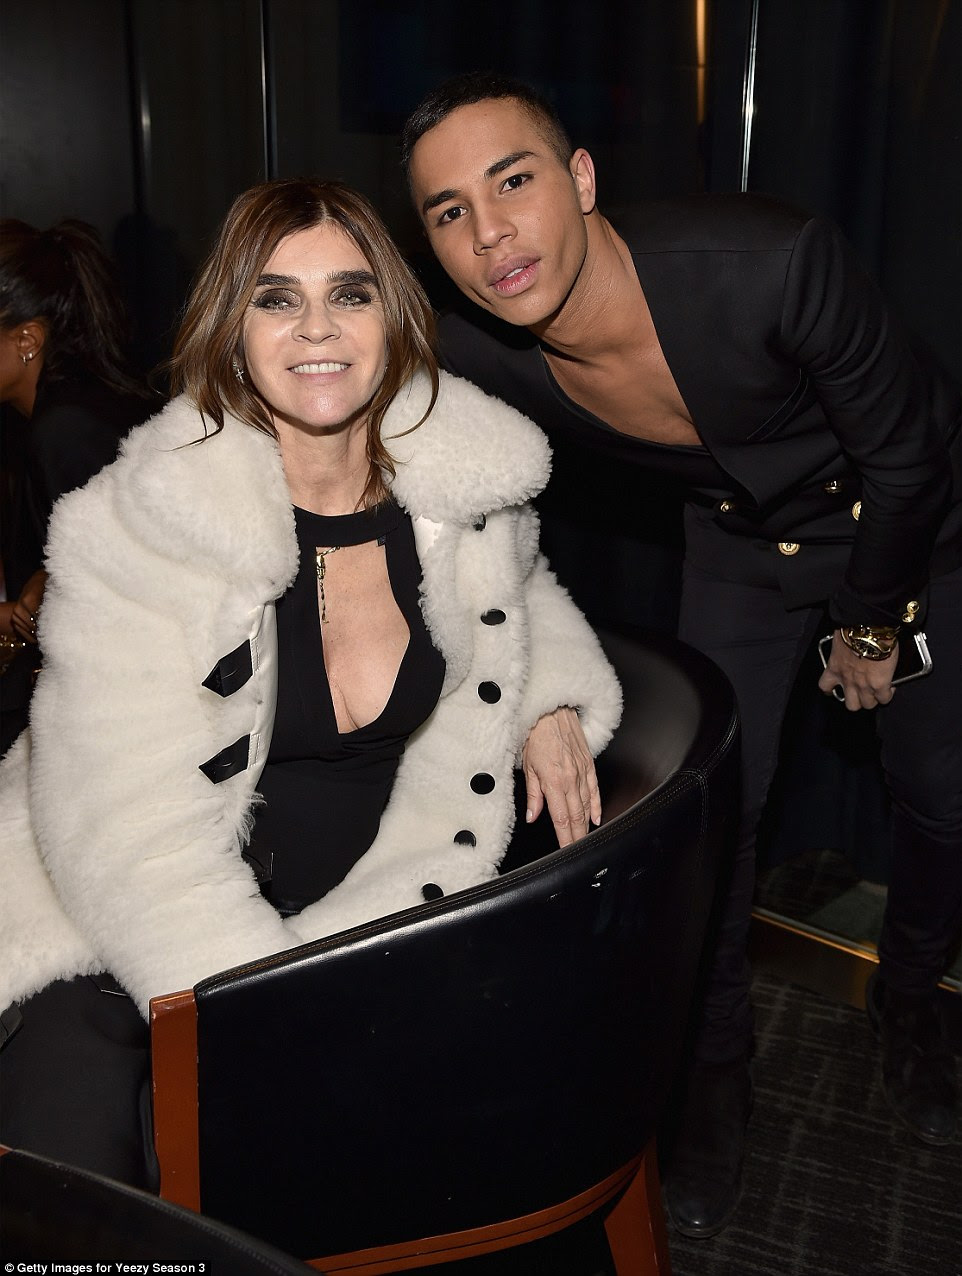 Style: Former editor-in-chief of French Vogue Carine and Balmain designer Olivier Rousteing caught up at the Yeezy show. Kanye thanked both of them onstage